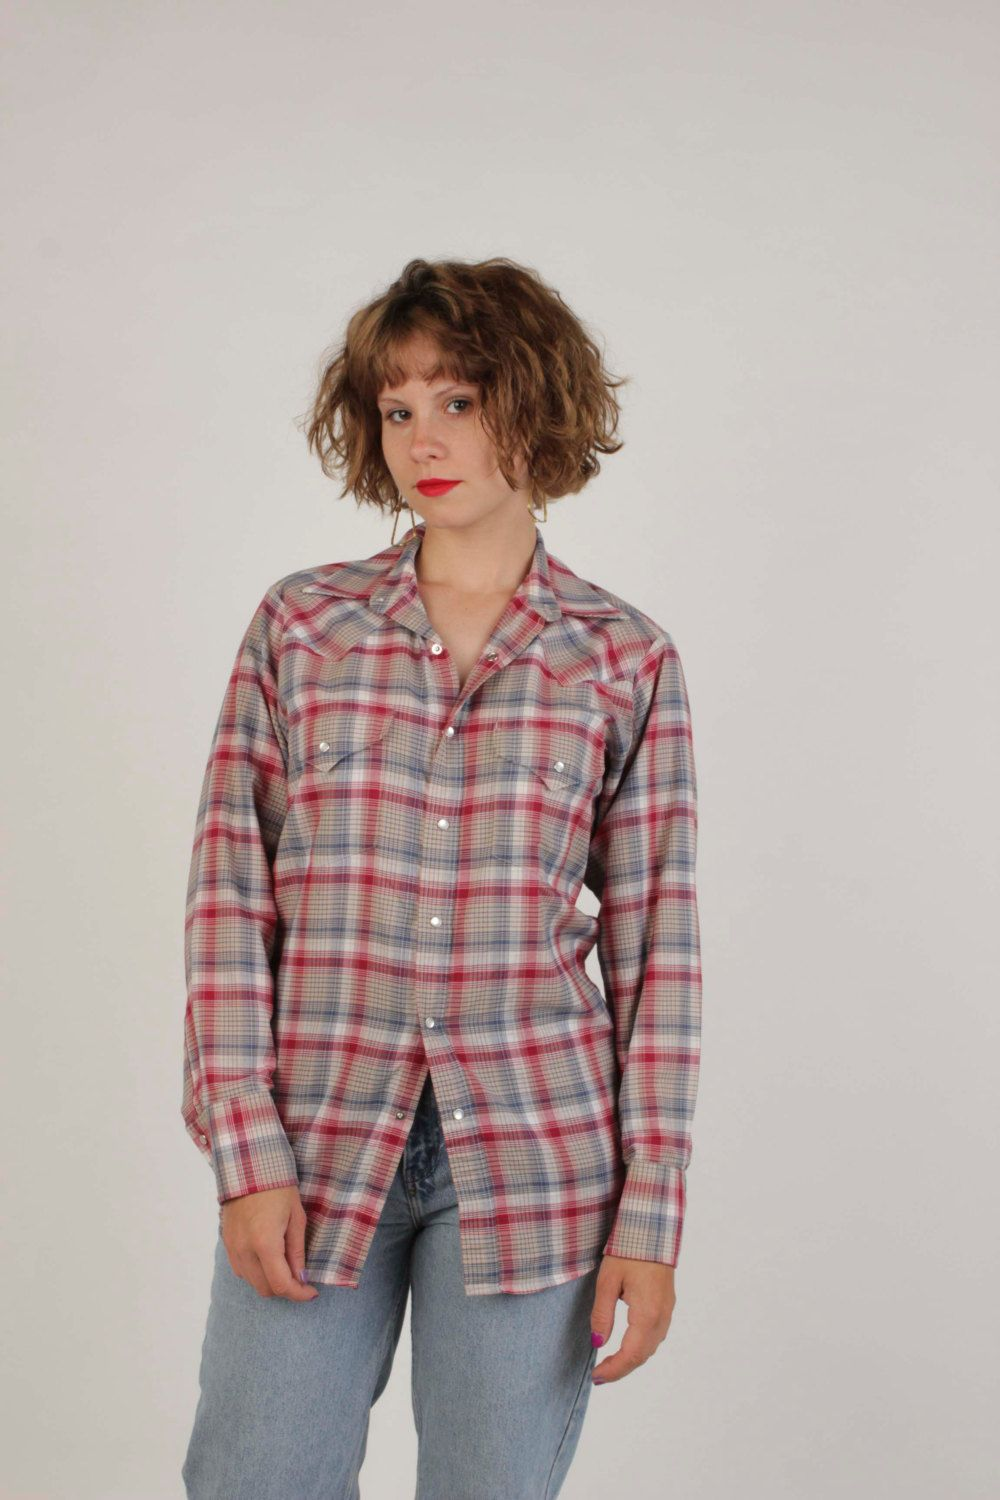 80's Western Shirt By Ely Cattleman/Unisex Button Down/Pearl Snap Buttons/Red Plaid/Size 14-32 by VertigoChicago on Etsy